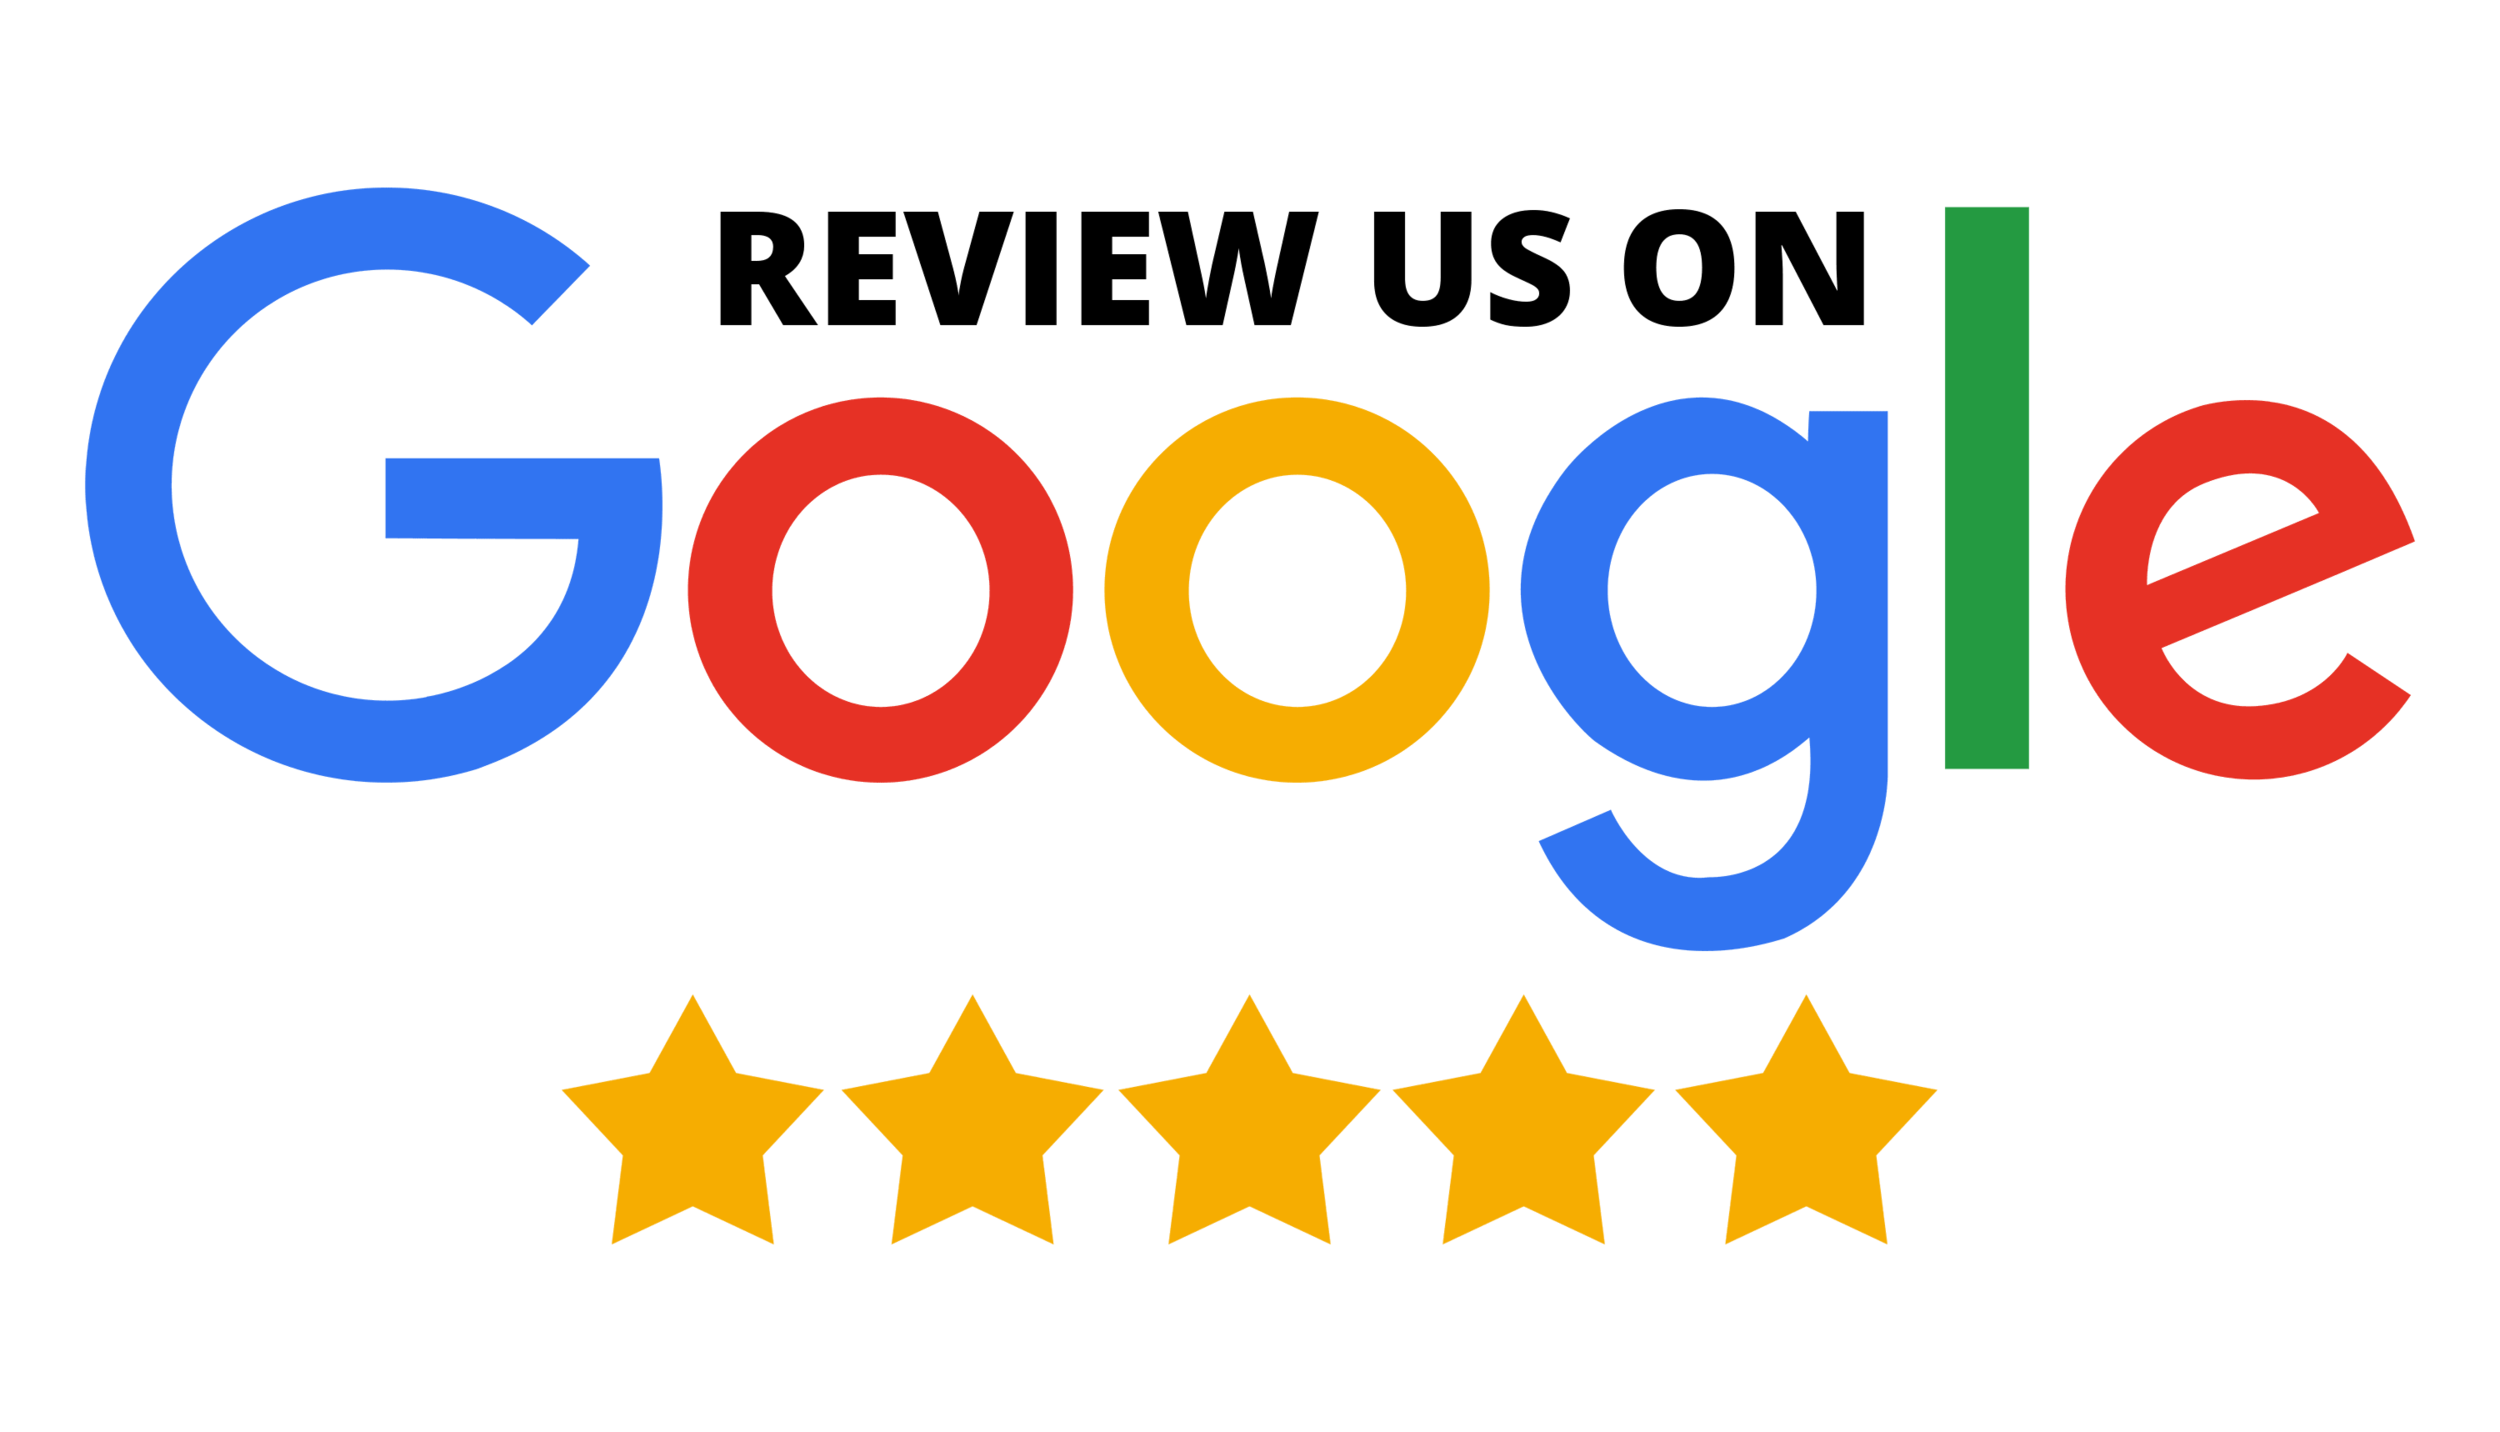 google-review-logo-png-1.png